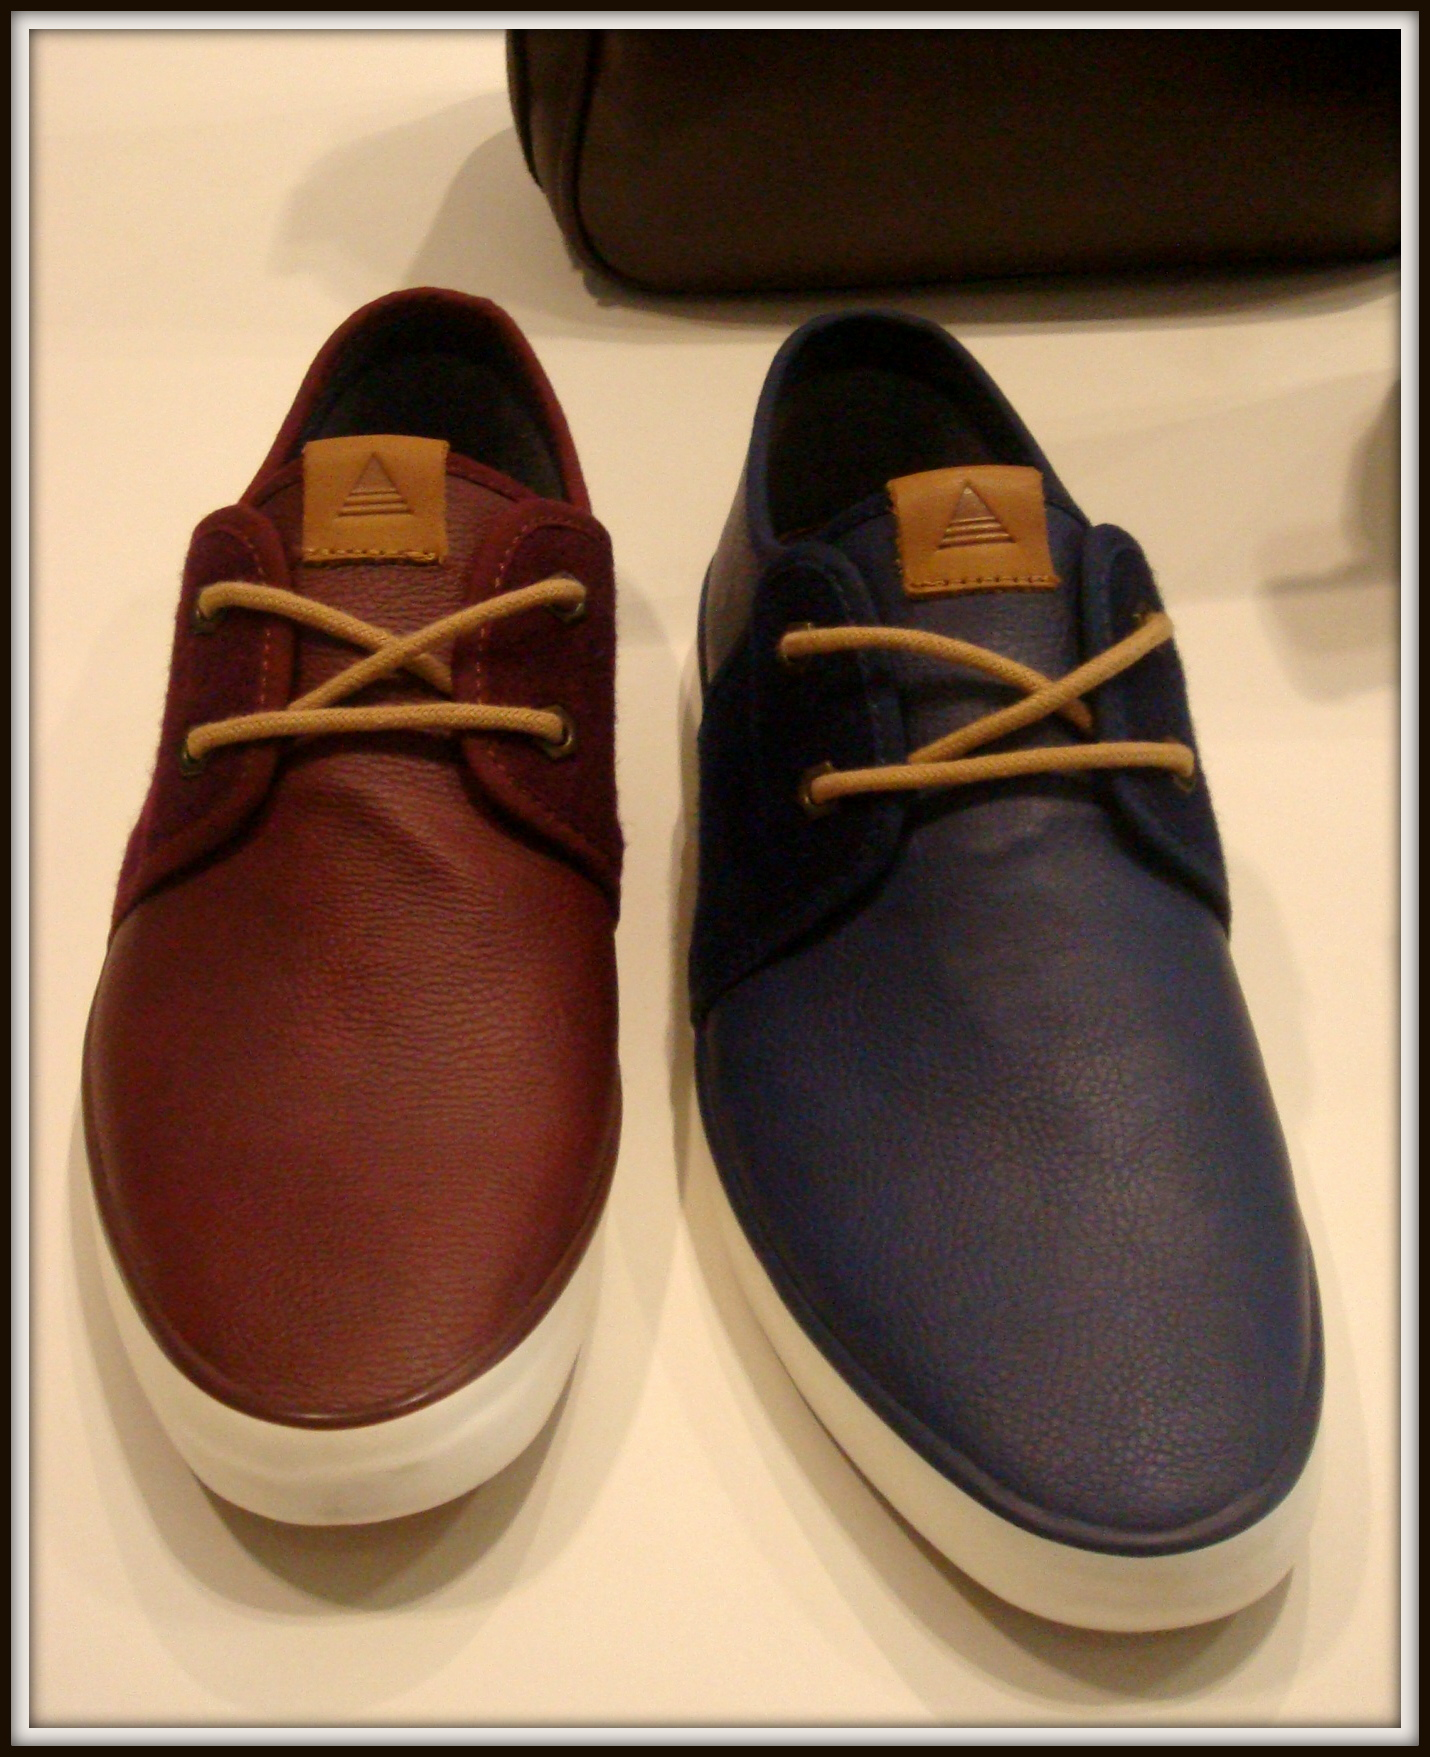 Aldo Shoes Looking For My Perfectpair